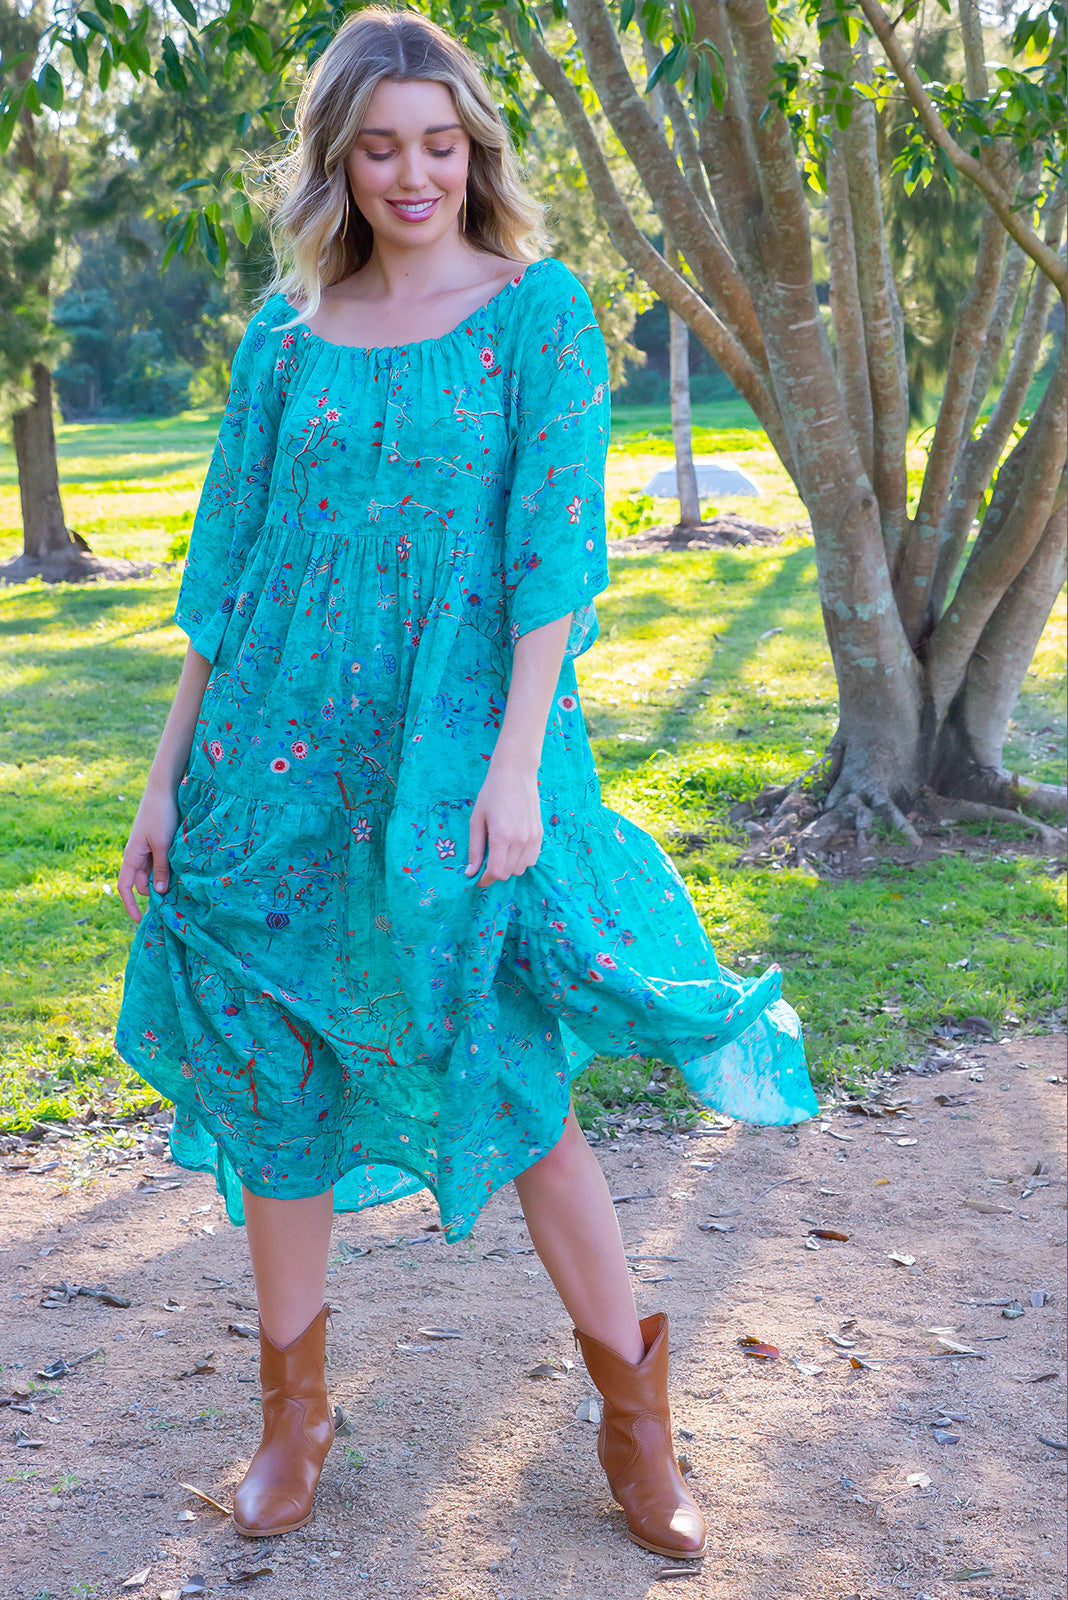 Lulu Liberty Aquamarine Dream Swing Maxi Dress features a bohemian inspired tiered skirt, adjustable neckline which can be worn off the shoulder, a fabric waist belt and beautiful bright cotton fabric in a dainty floral print.